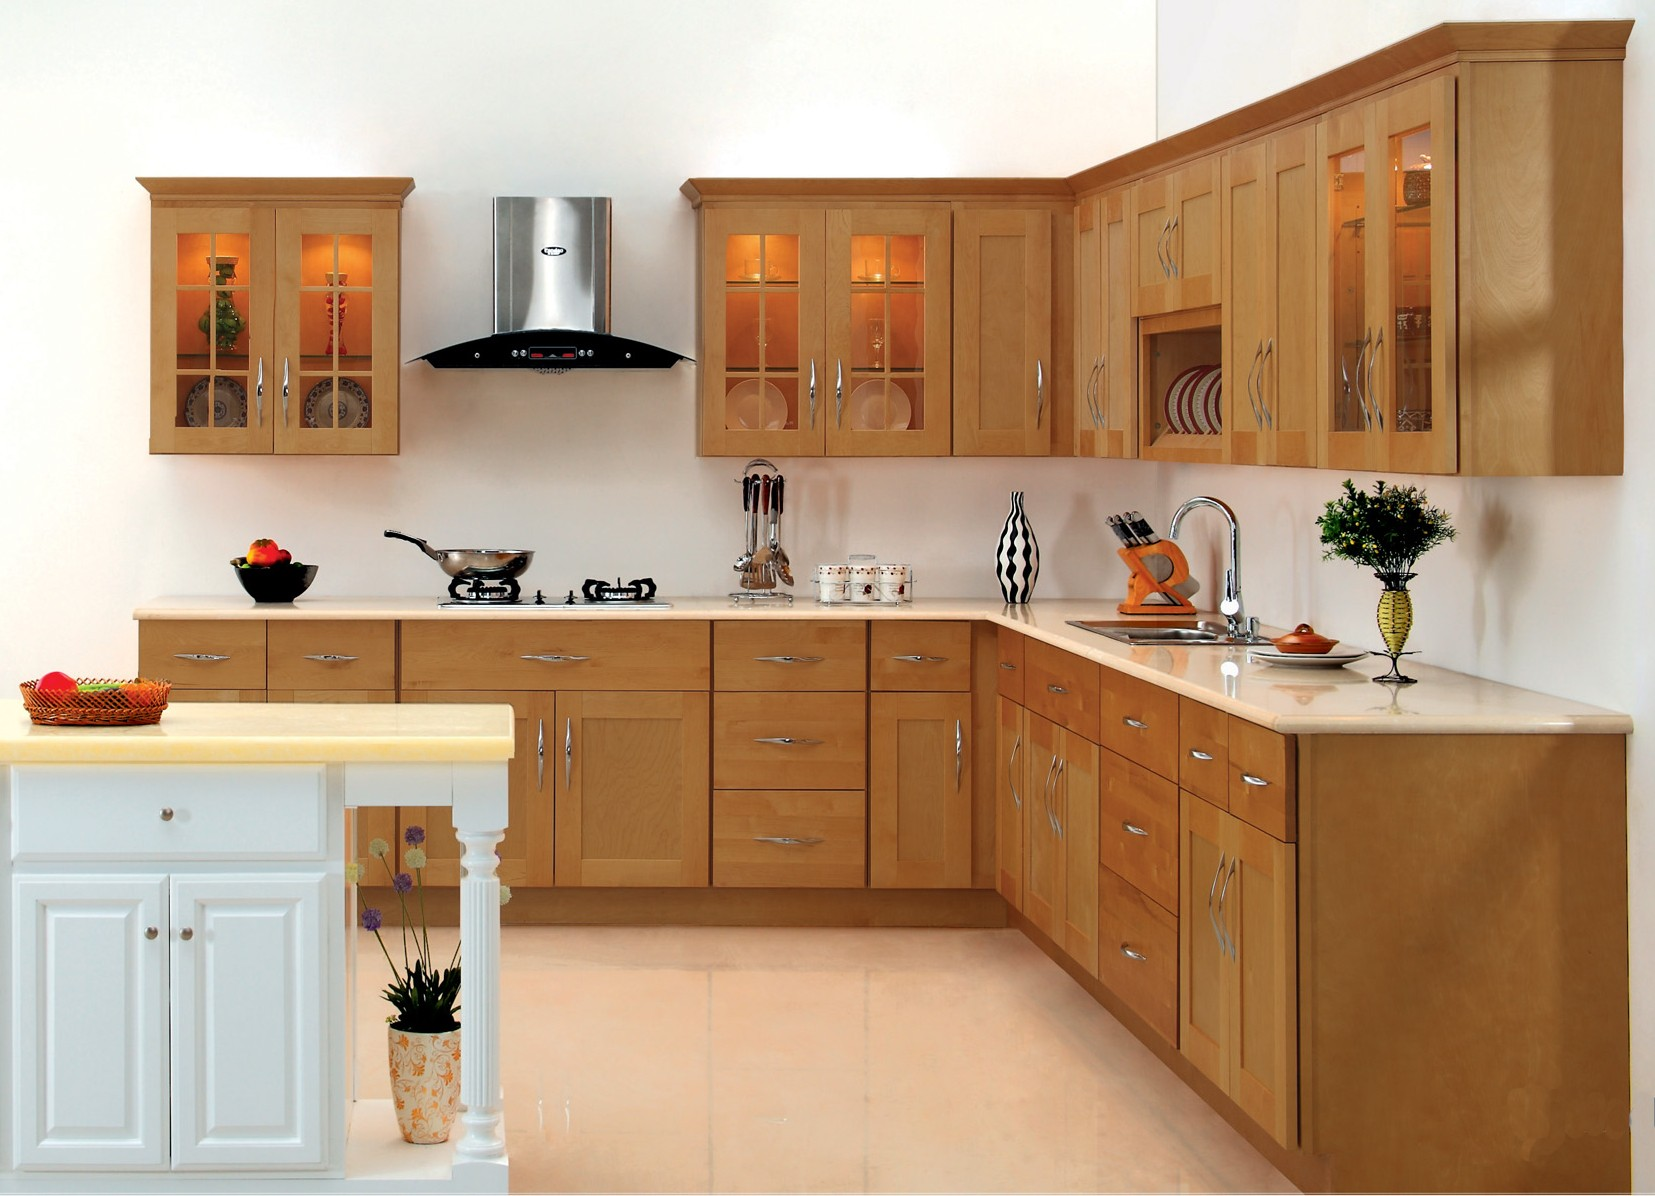 Thomasville Kitchen Cabinets Light Brown Wooden Detail Design Medium Wood Cherry Color Island Luxury With Ceramic White Color and White Walls Give the Impression Light